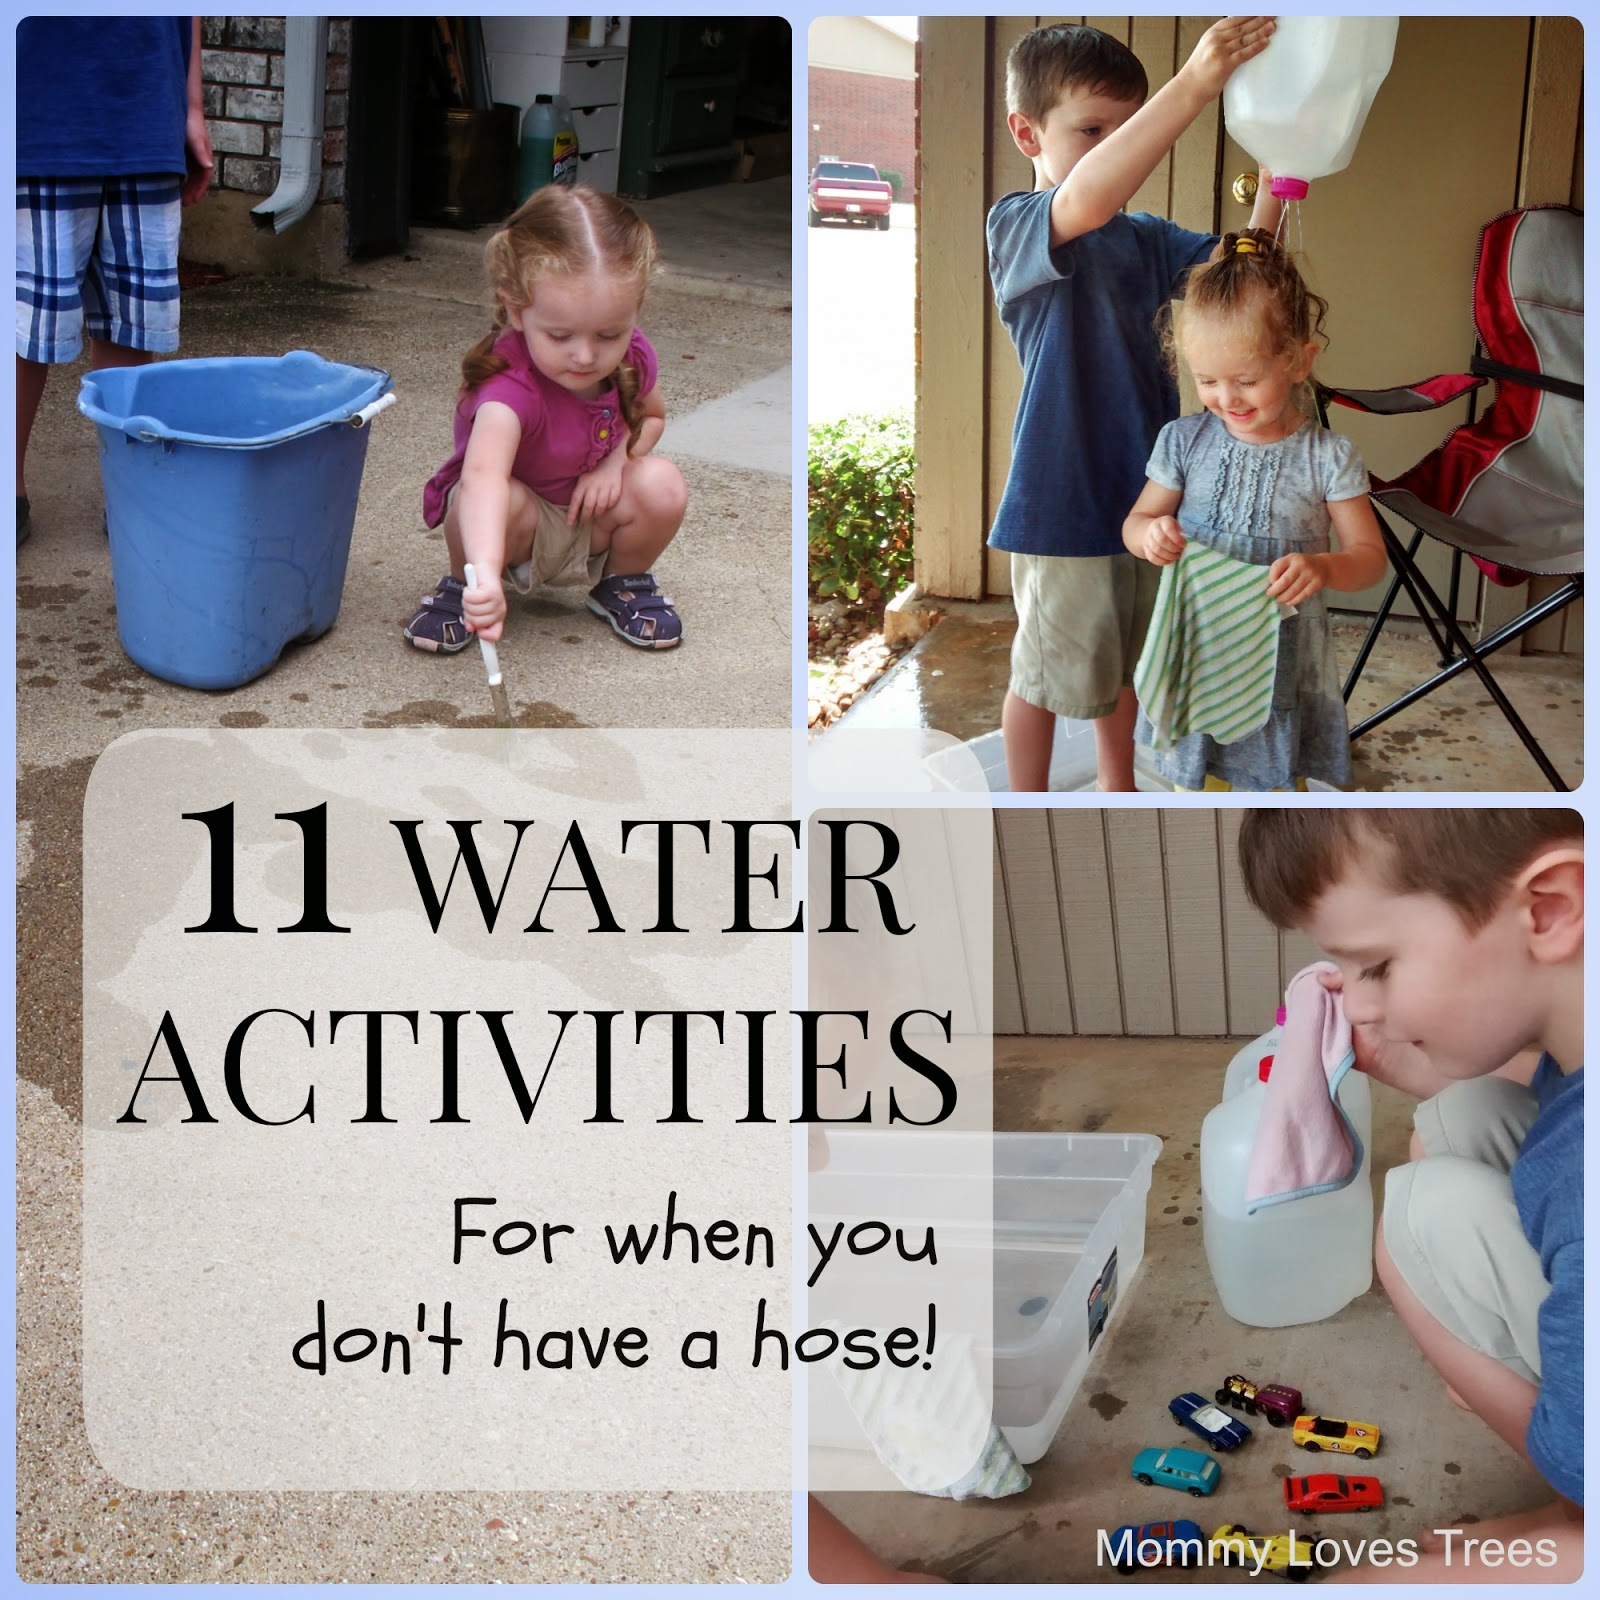 11 Water Activities: For when you don't have a hose.